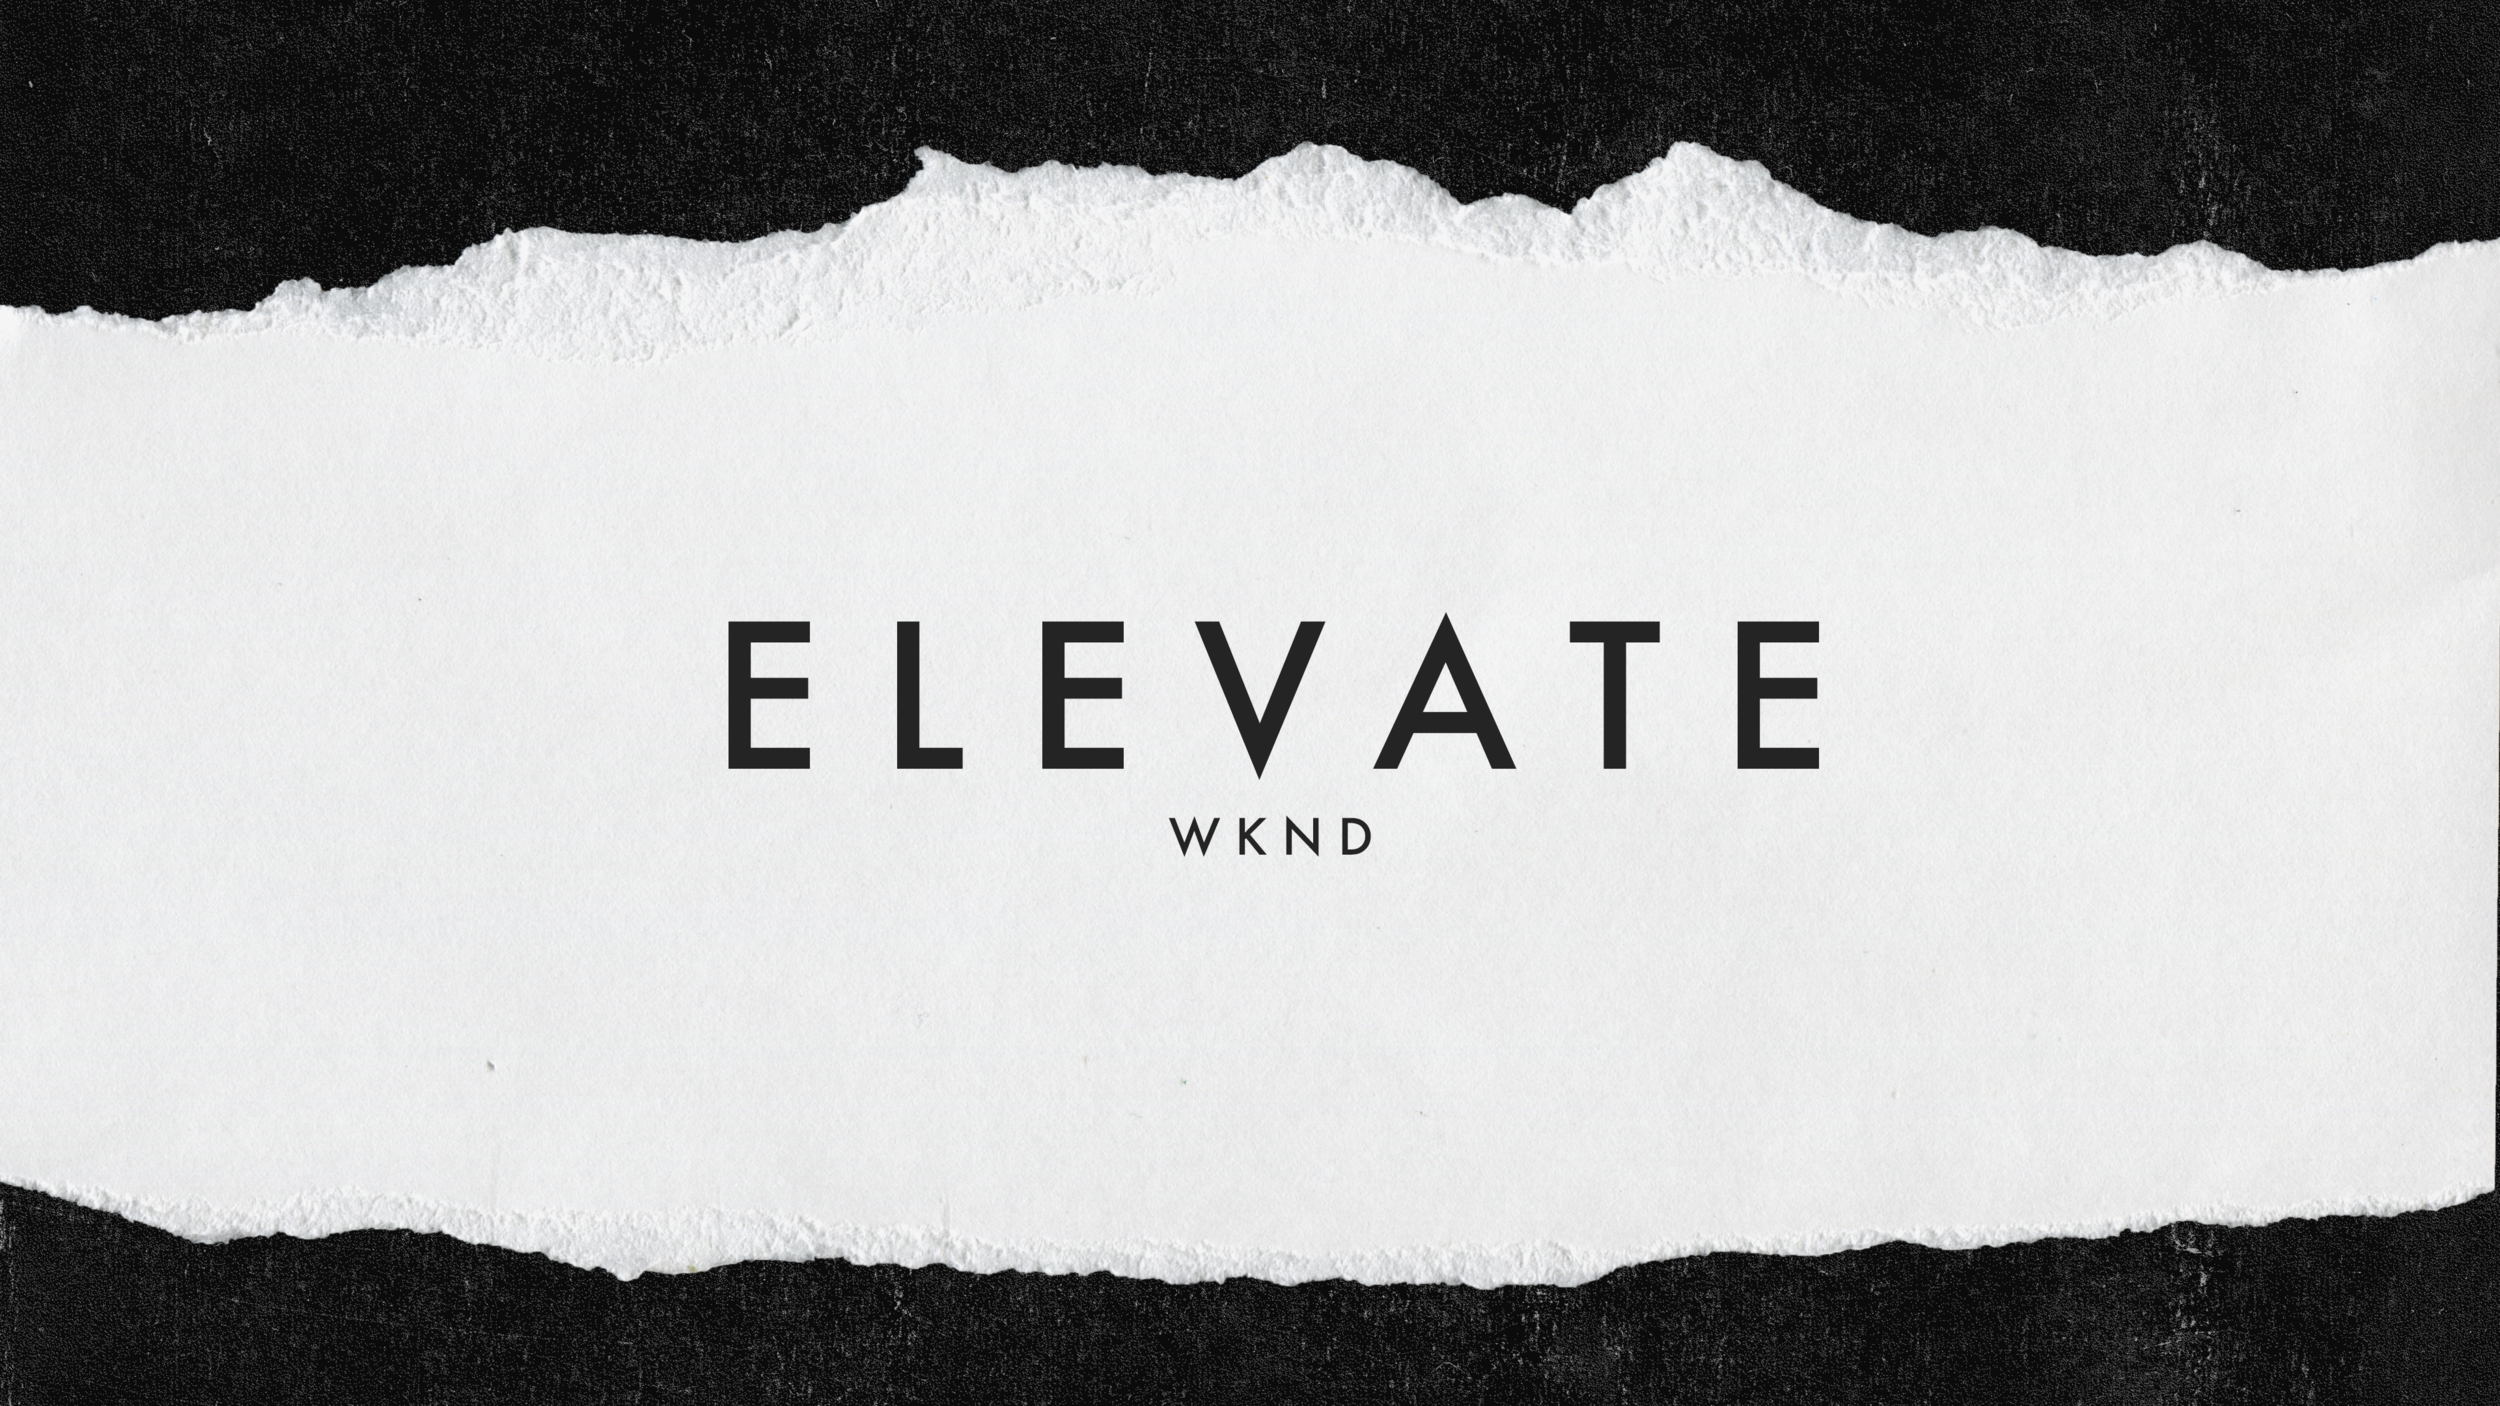 elevate wknd idea 2.png